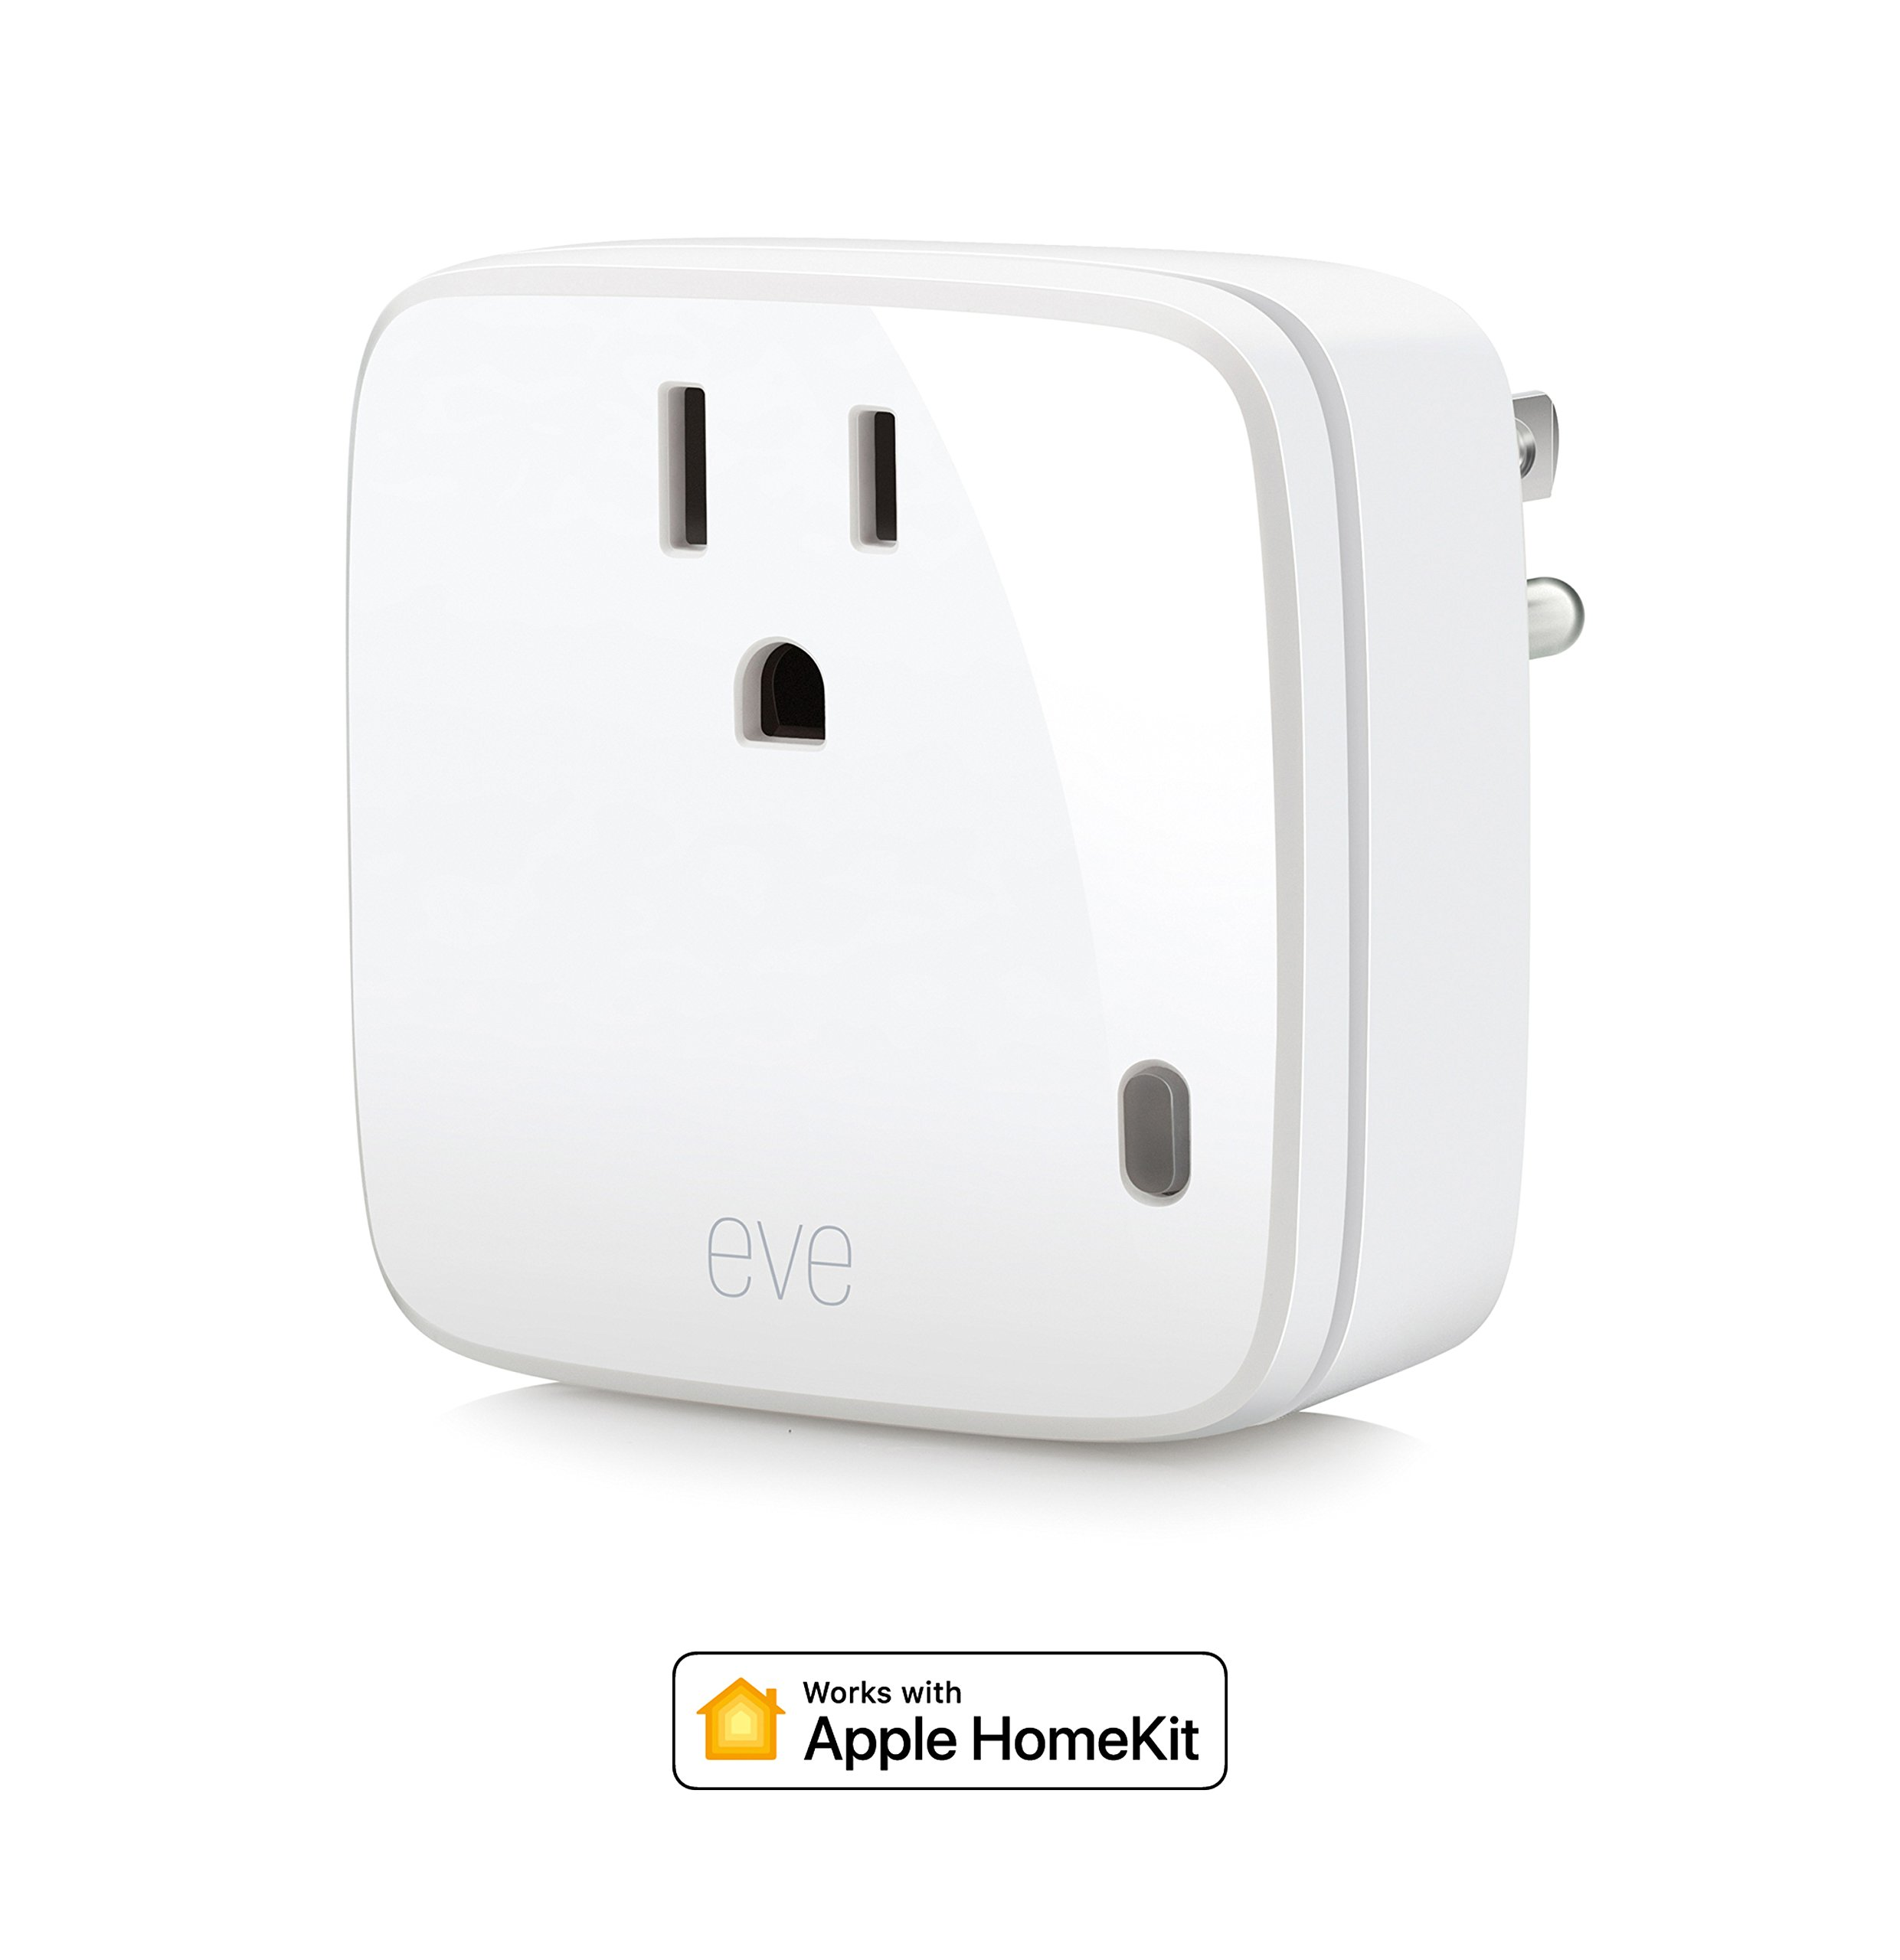 Eve Energy - Smart Plug & Power Meter with Apple HomeKit technology, Bluetooth Low Energy